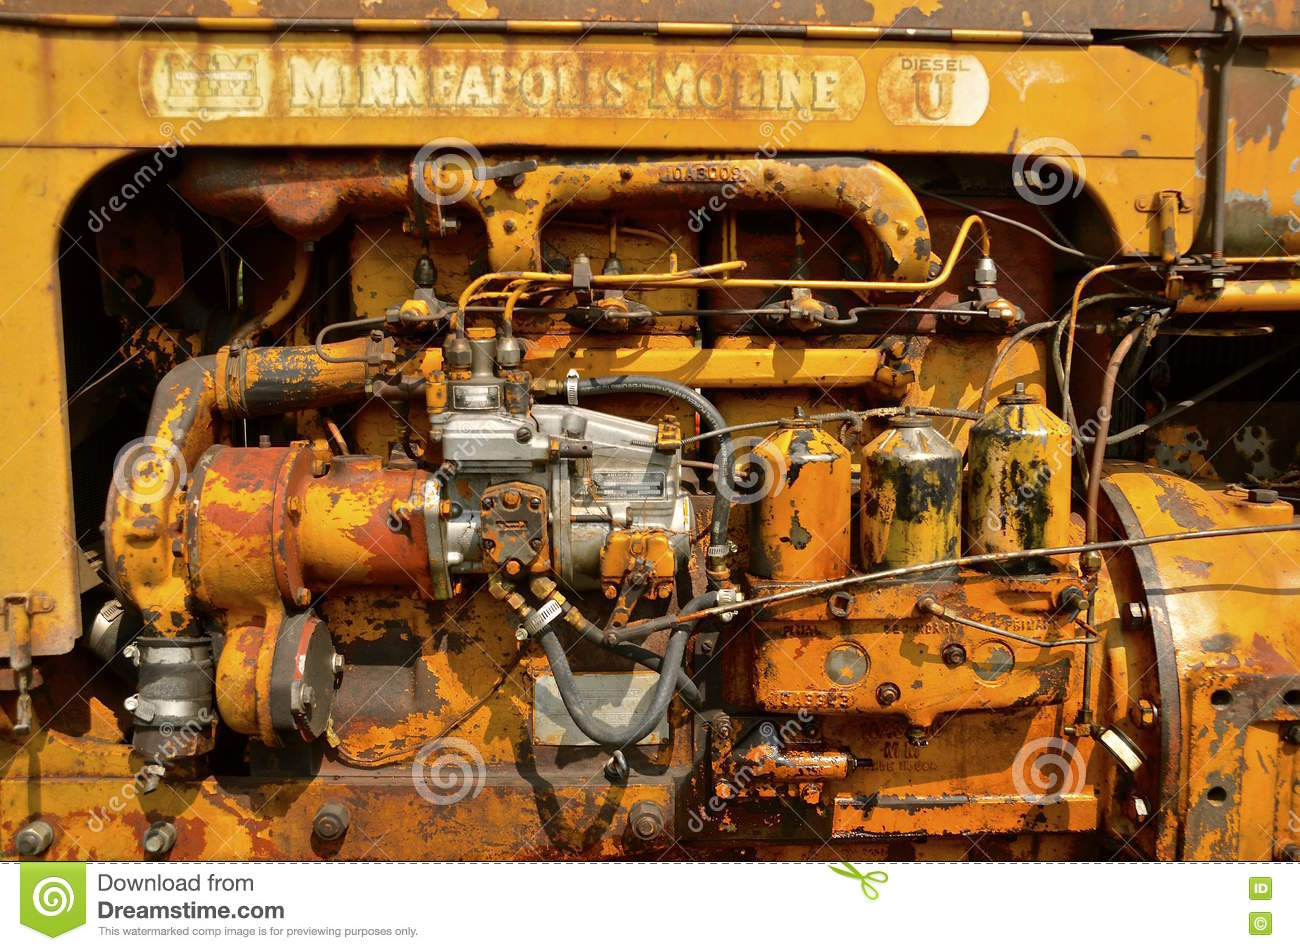 External Parts Of A Tractor : Parts of an old minneapolis moline tractor engine